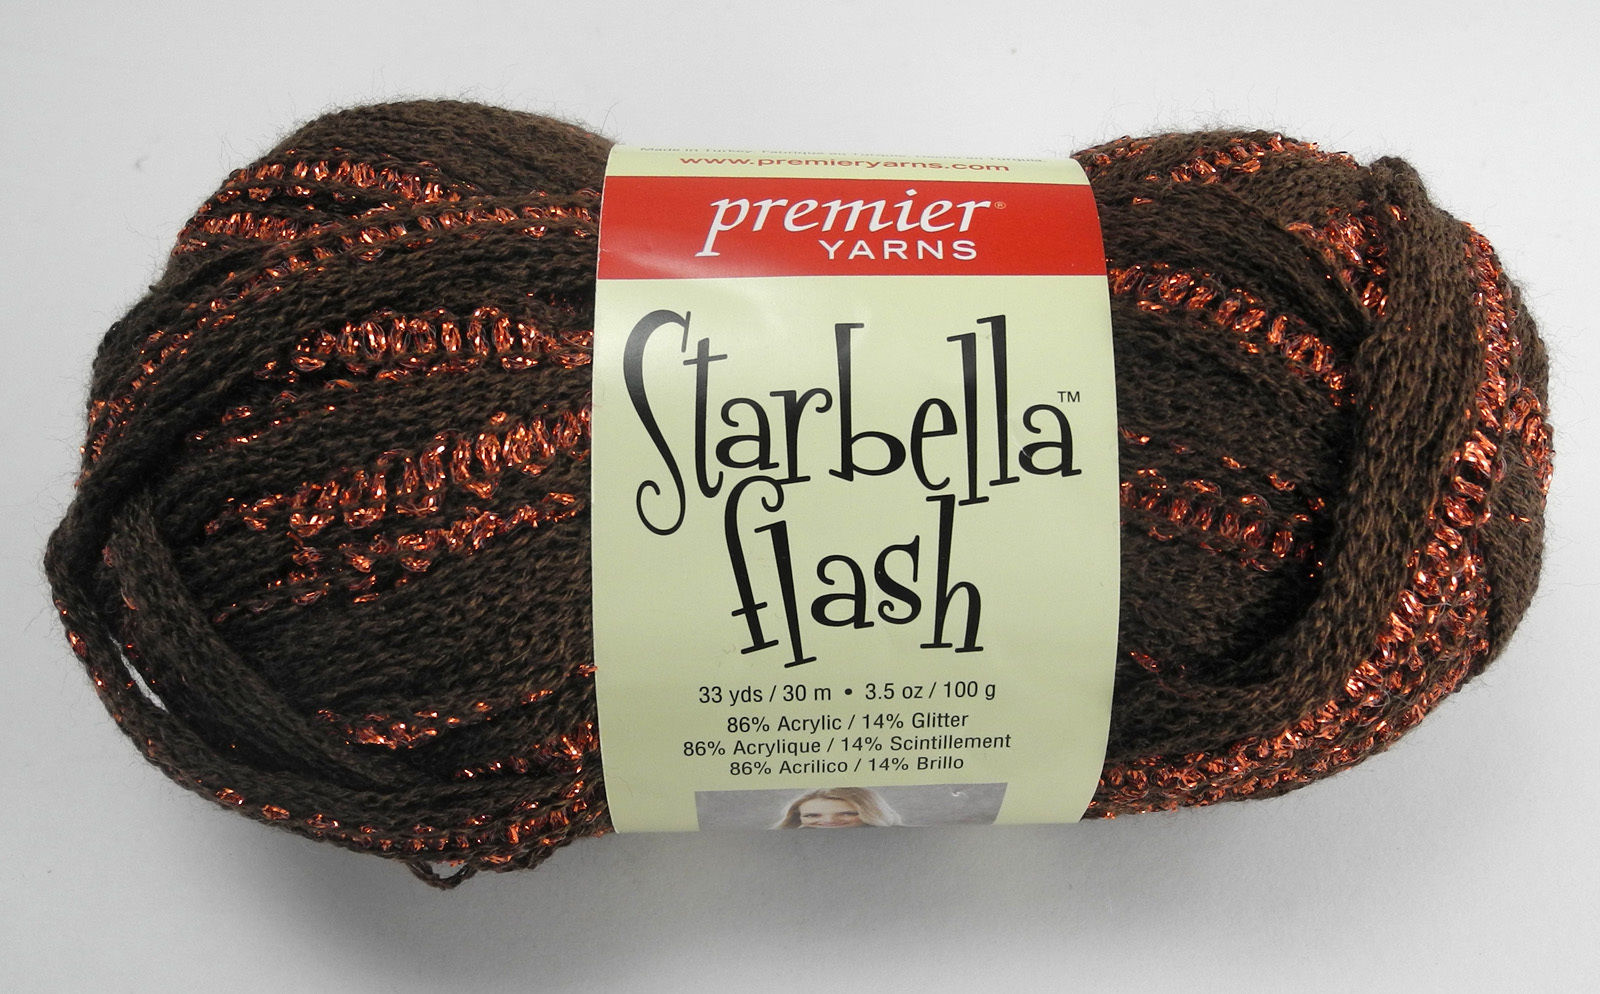 Starbella Flash Acrylic/Glitter Yarn - 1 and 49 similar items